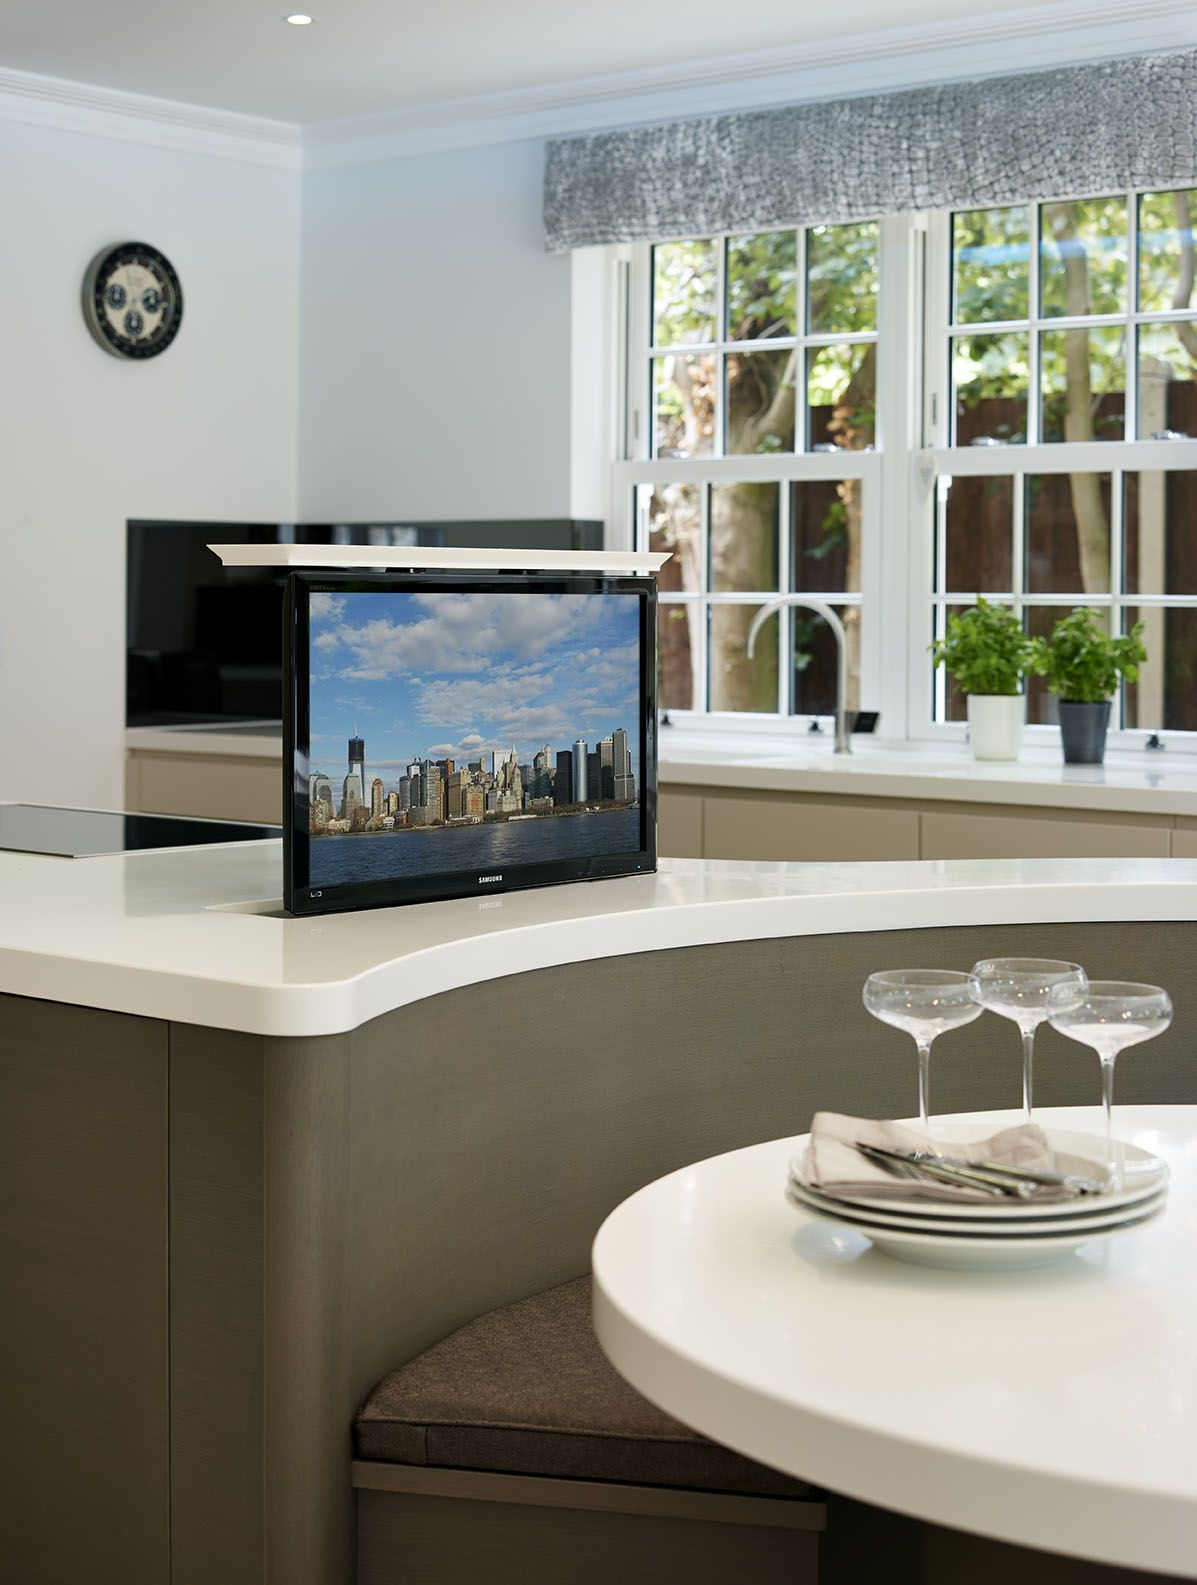 The Worktops Are 50mm Corian Glacier White And We Integrated A Motorized Tv Lift System That When Cl Kitchen Design Kitchen Inspiration Design Bespoke Kitchens